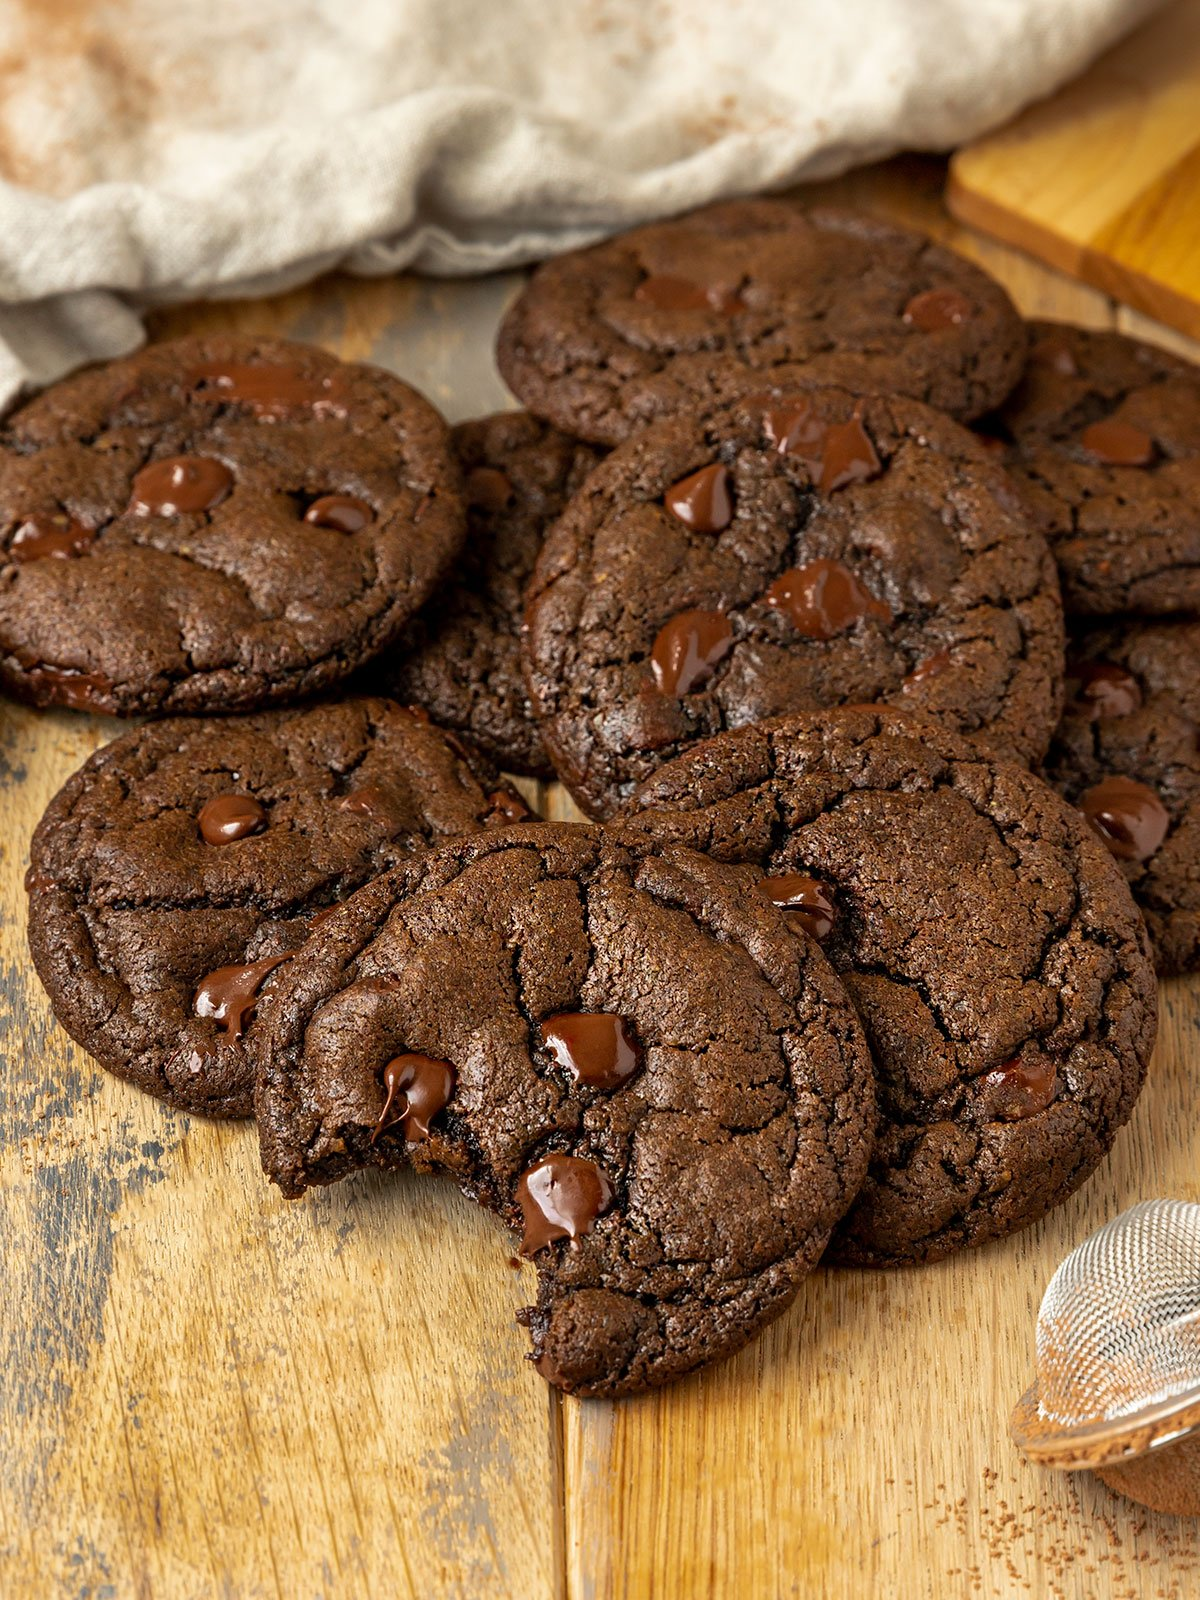 pile of chocolate chocolate chip cookies with one missing a bite to show fudgy texture inside